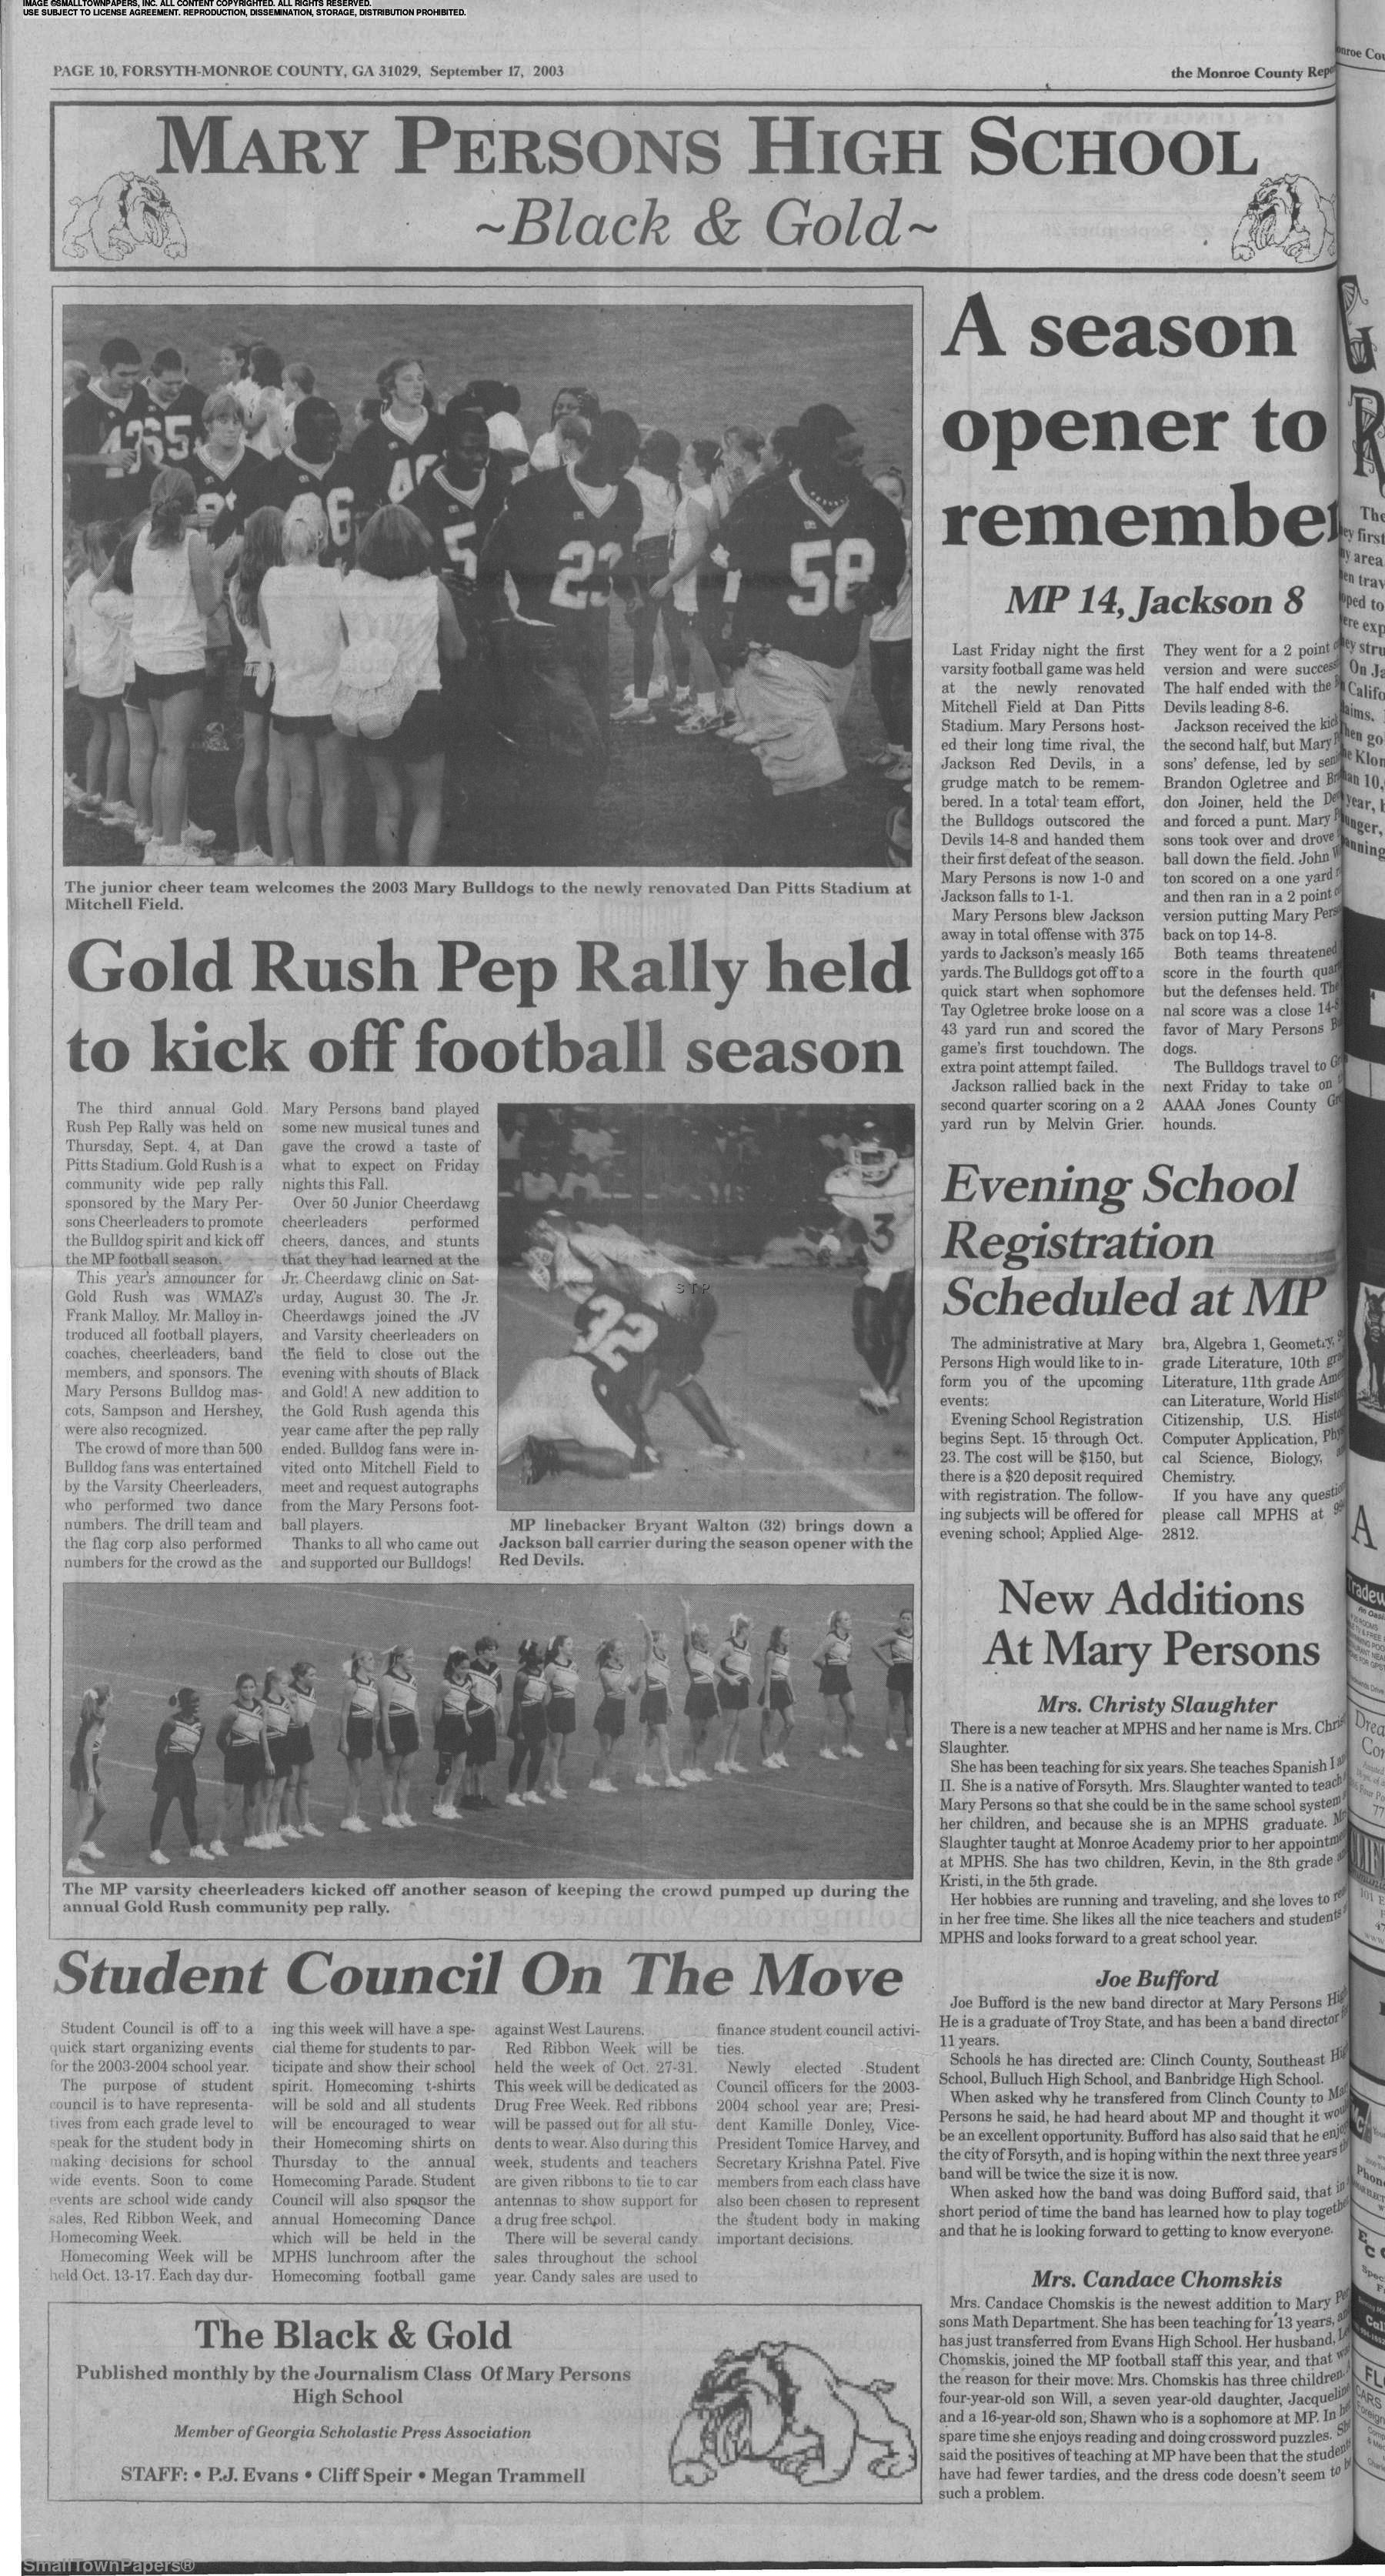 The Monroe County Reporter September 17, 2003: Page 10